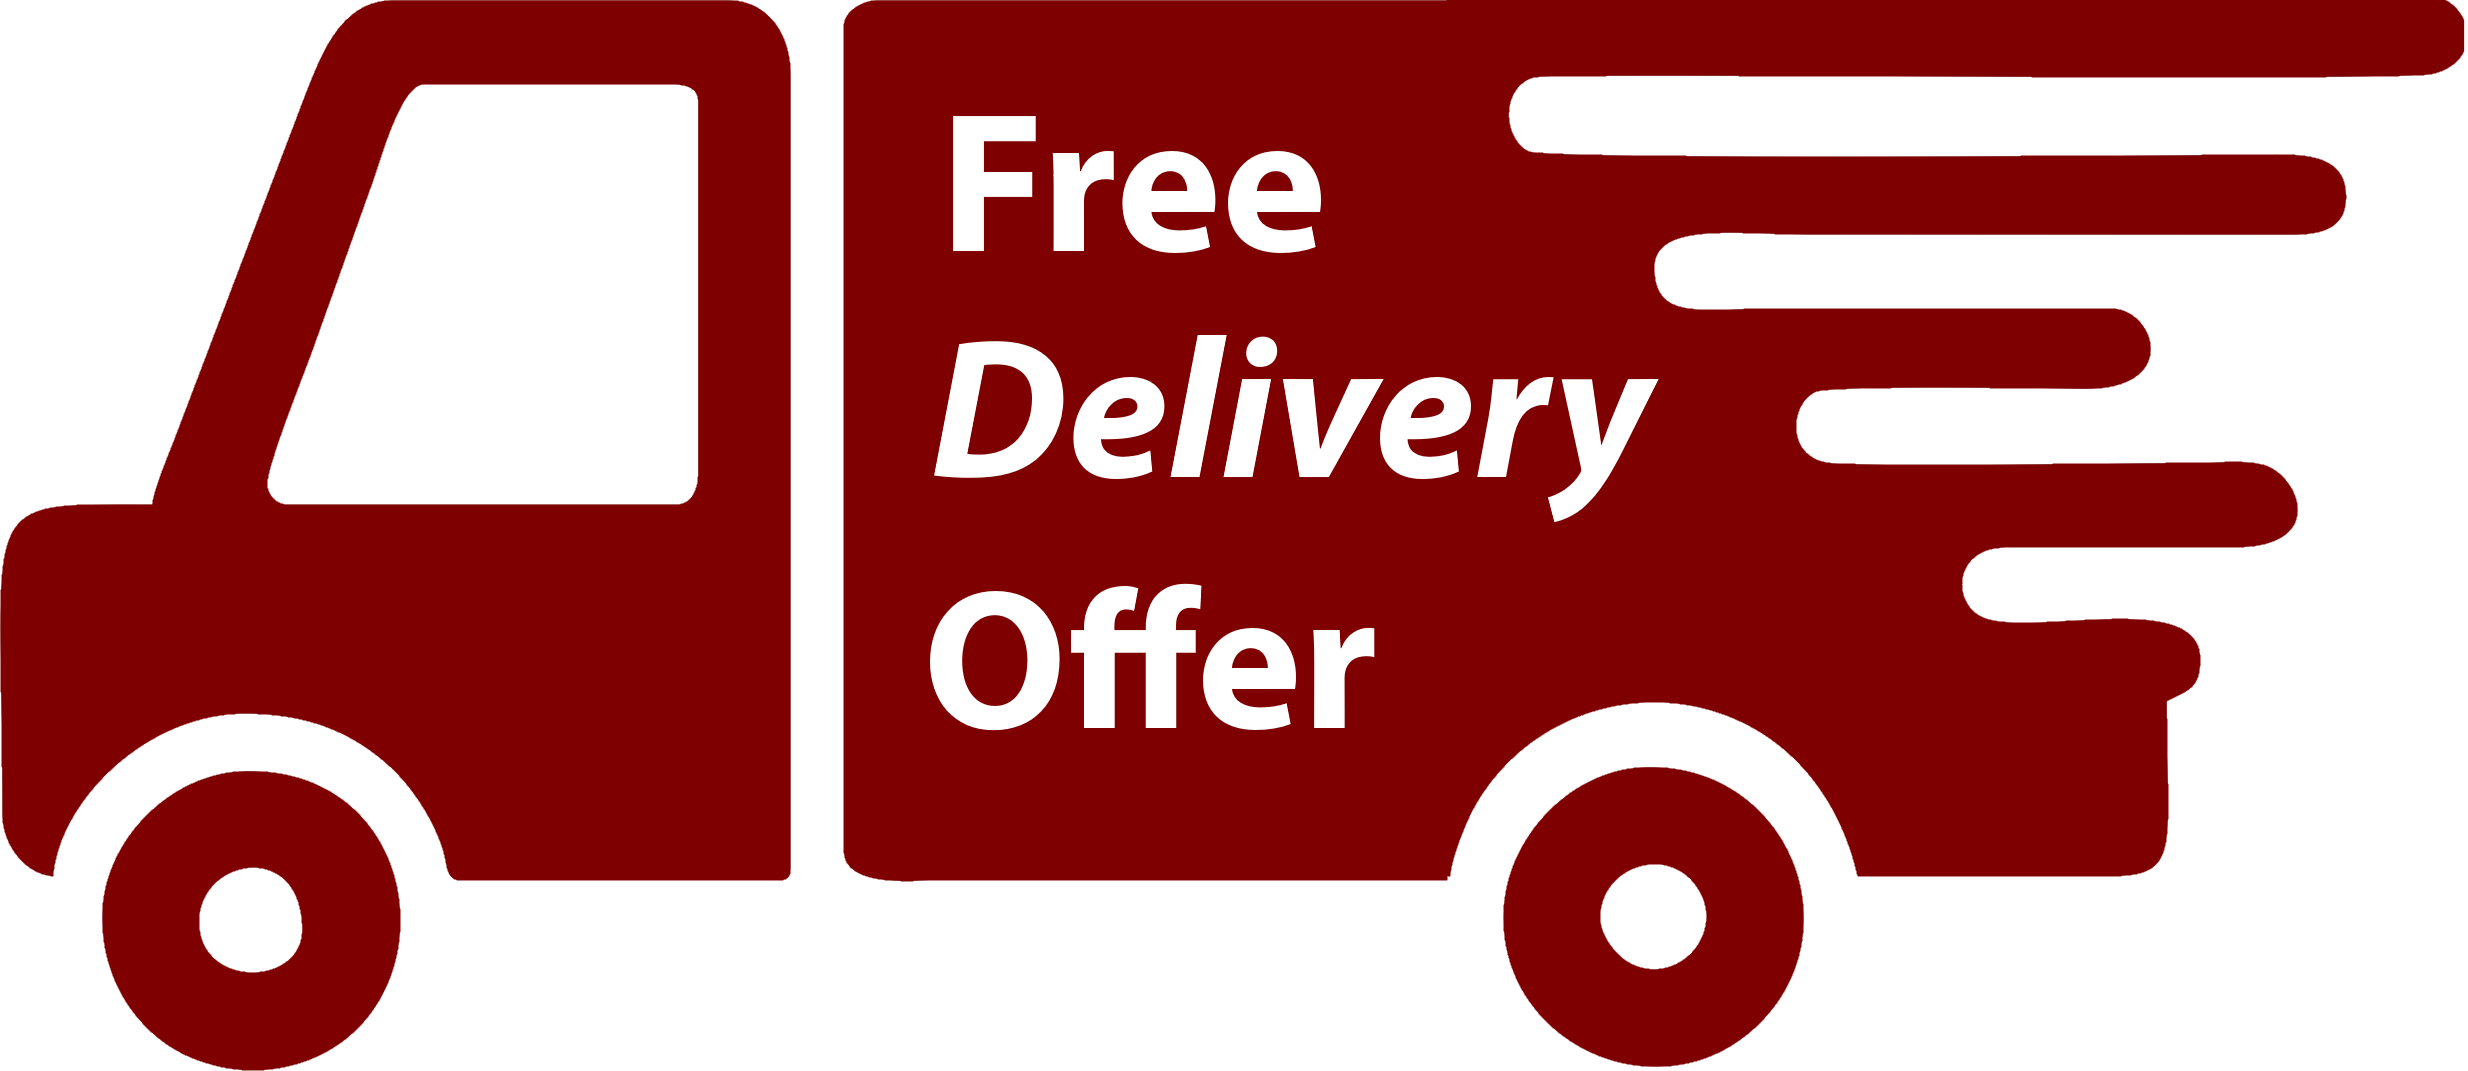 Free Delivery Offer At Buydirectonline Com Au